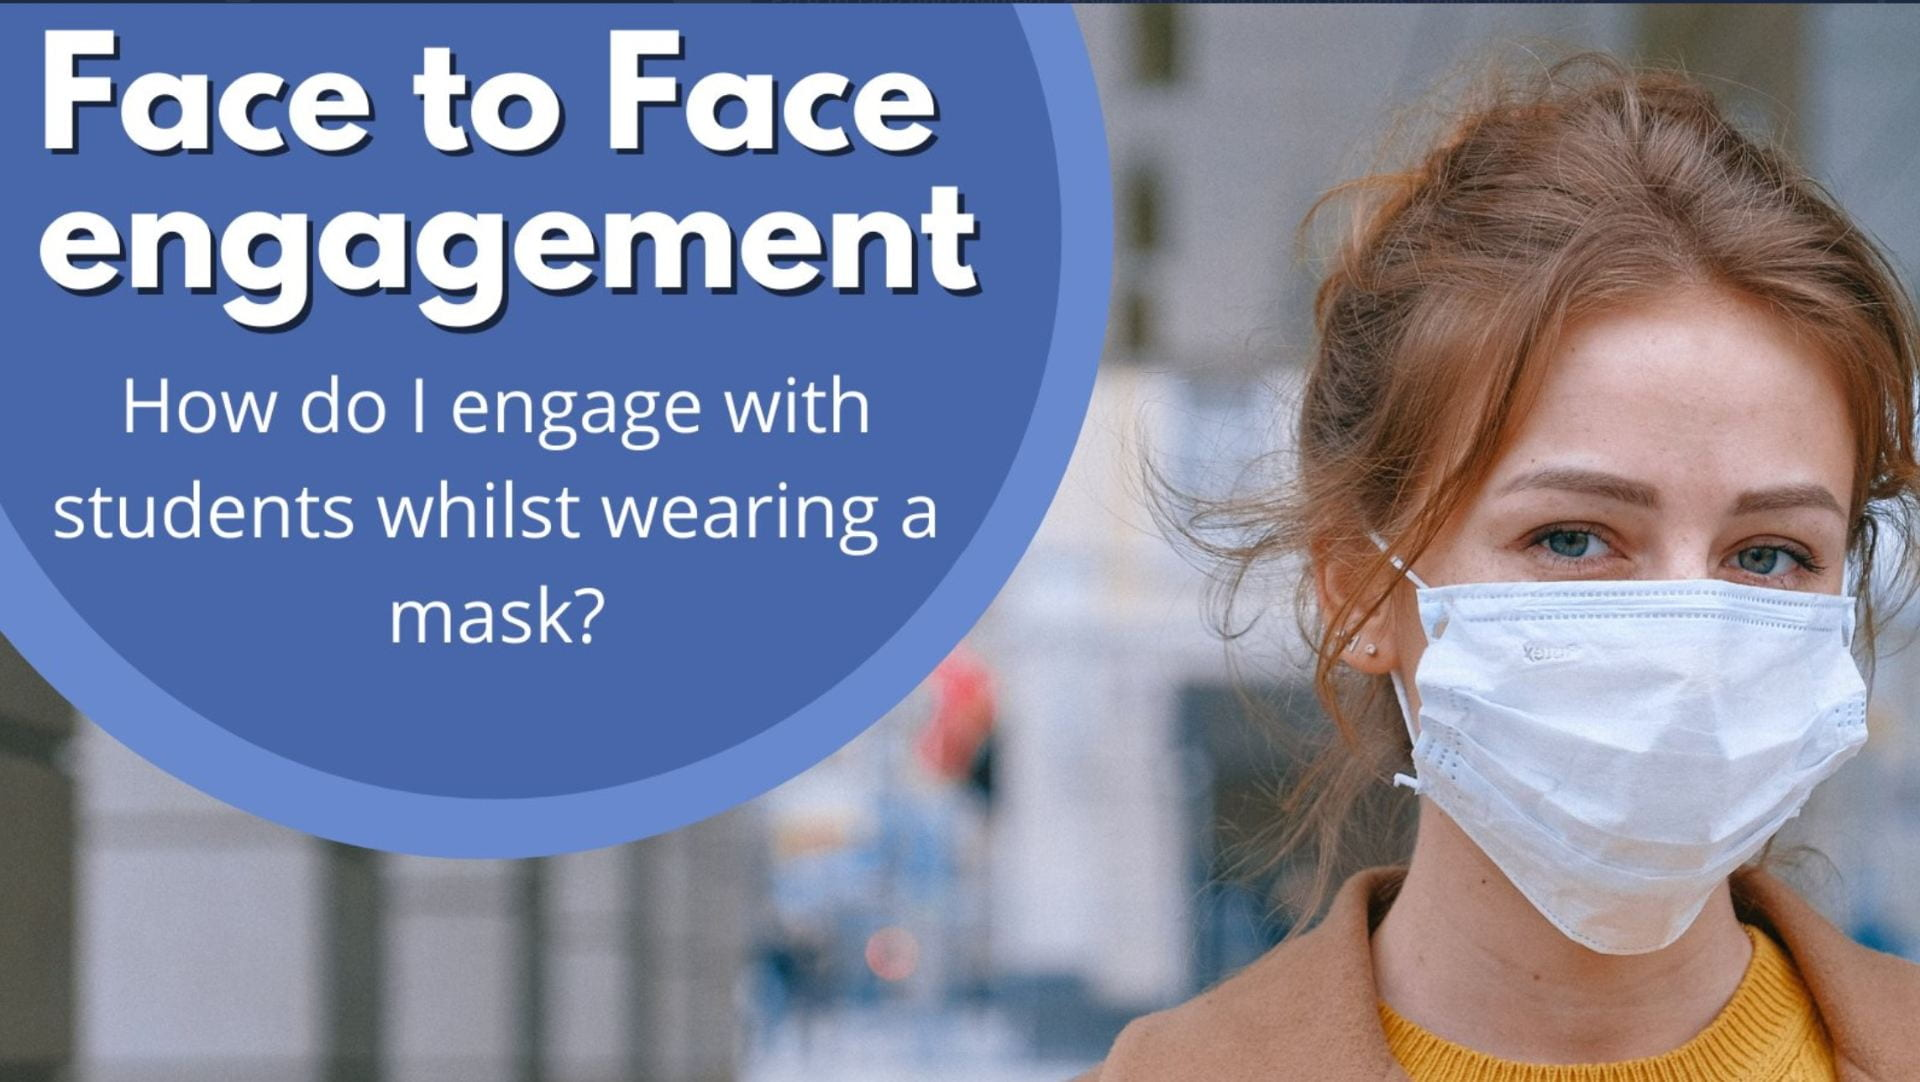 Face to face engagement. How do I engage students whilst wearing a mask?